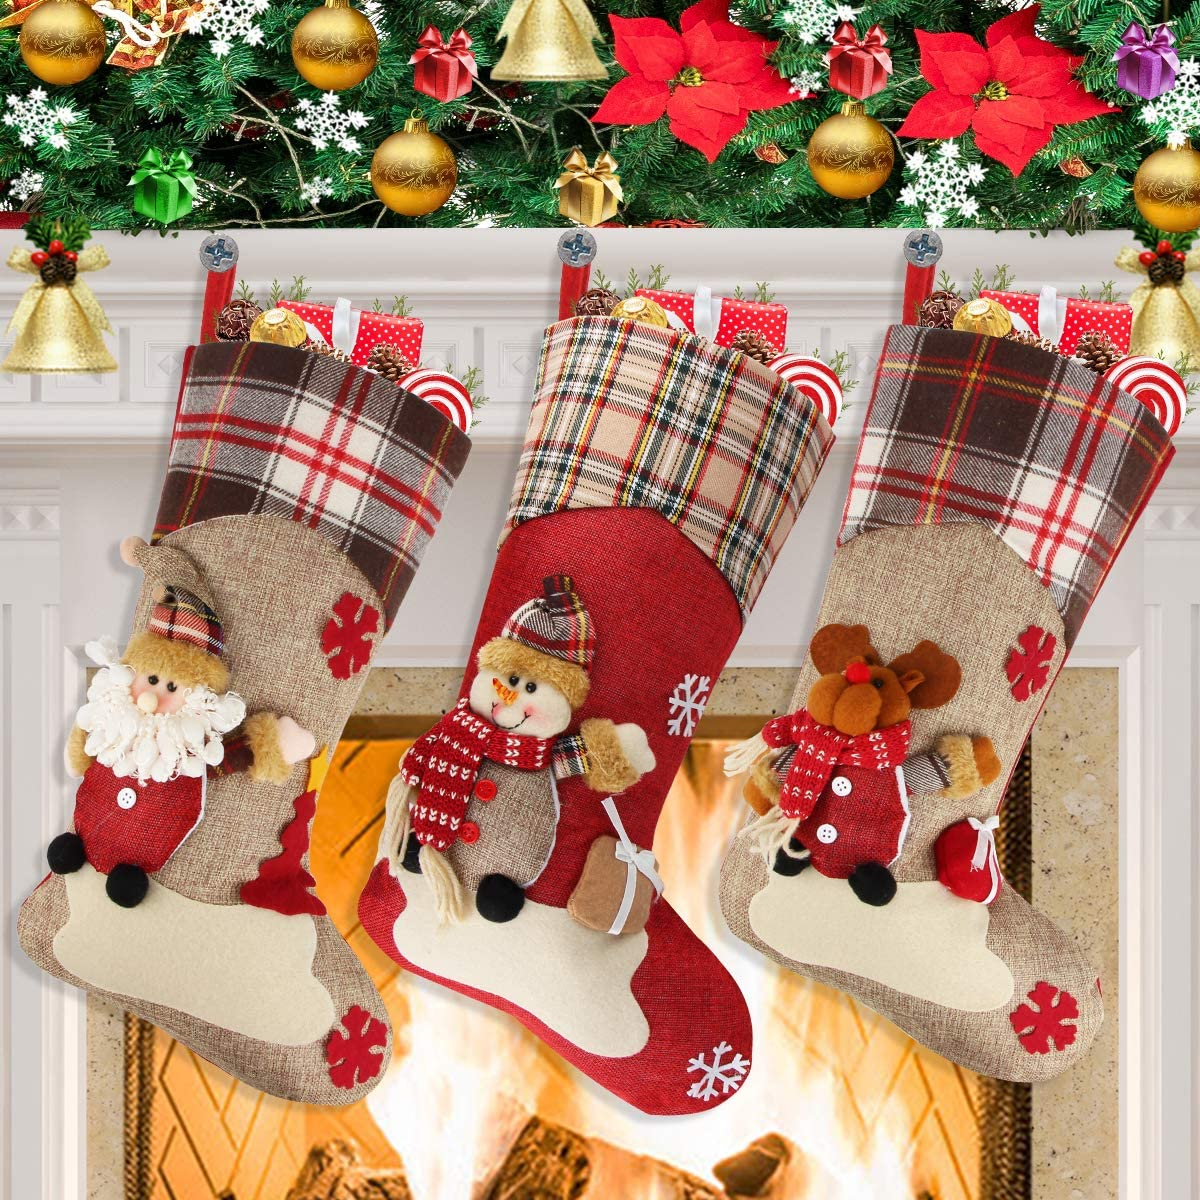 Christmas Stockings Dreampark Big Size 3 Pcs 18 Classic Christmas Stocking Santa Snowman Reindeer Xmas Character For Party Decoration Style 2 Kitchen Dining